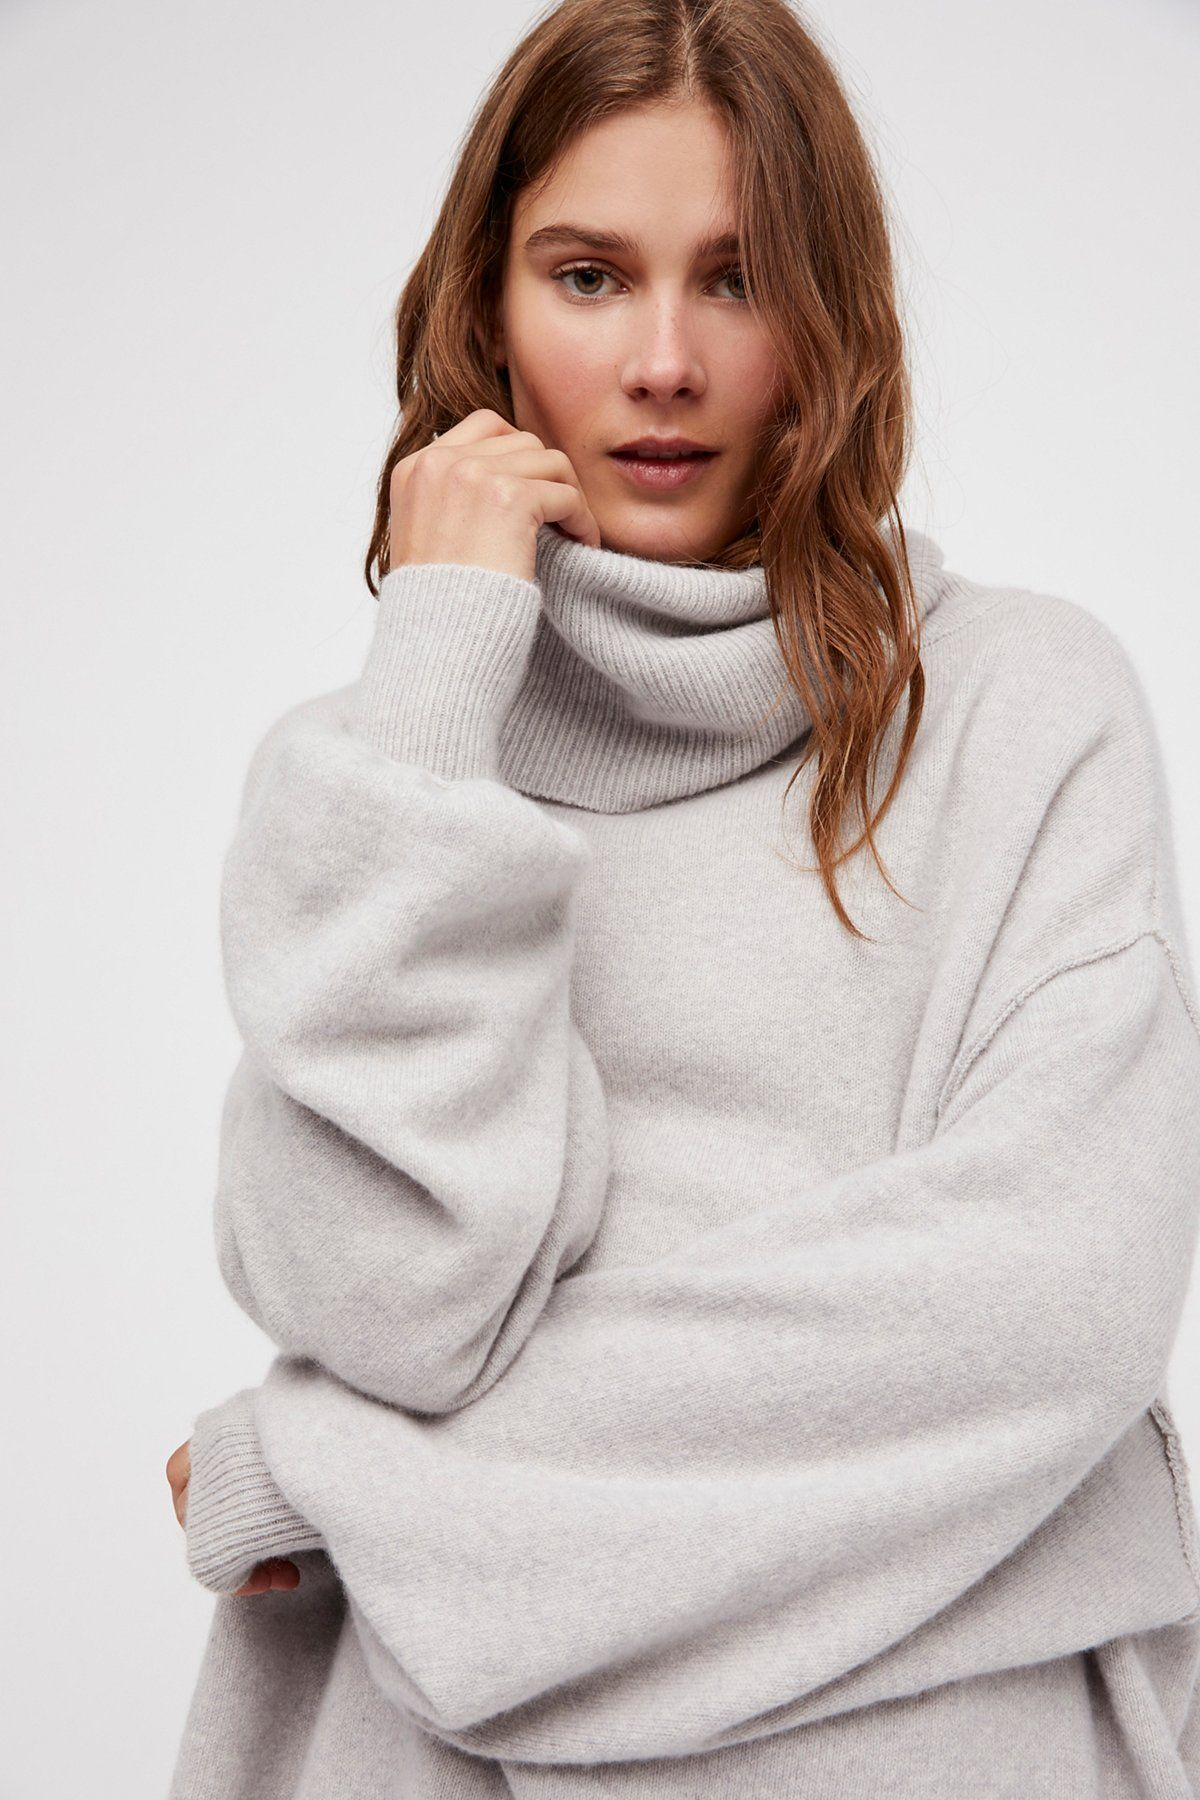 Keep A Secret Cashmere Tunic | Super cozy oversized tunic sweater ...